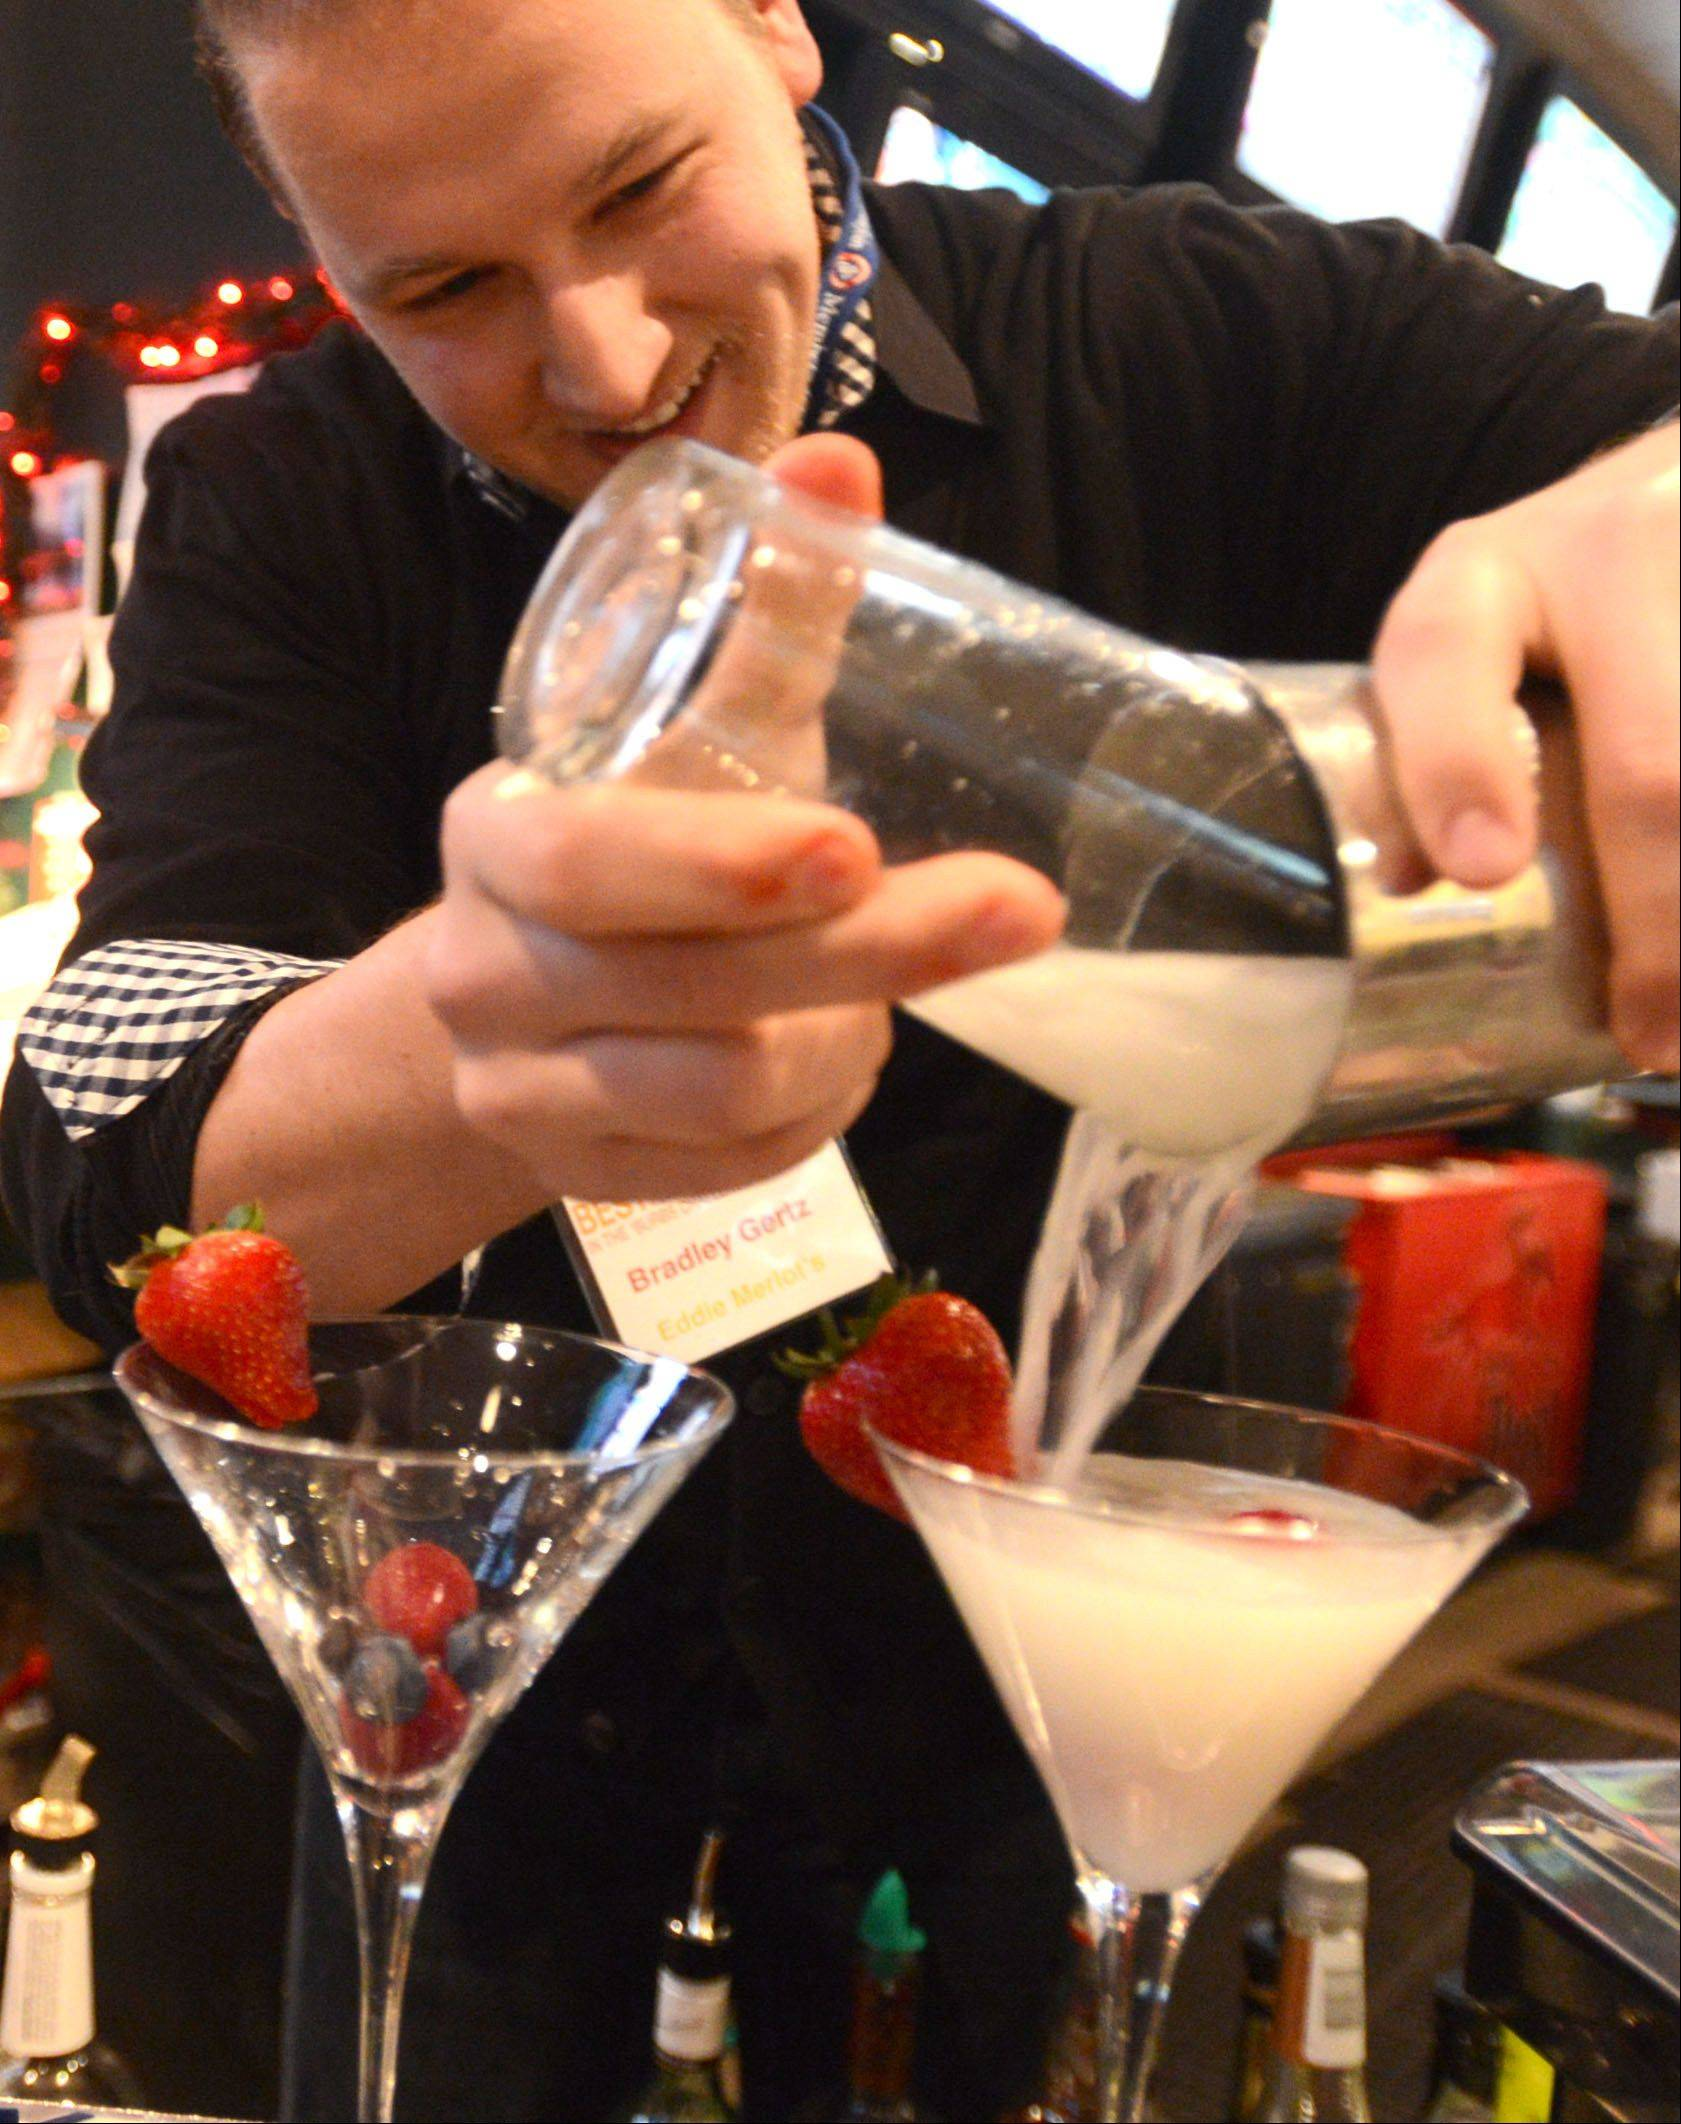 Mixologist Bradley Gertz of Eddie Merlot�s Lincolnshire restaurant prepares the Berry White Martini during the Daily Herald�s Best Martini in the �Burbs Challenge at the At The Post Sports Bar & OTB in Elk Grove Village on Monday night.